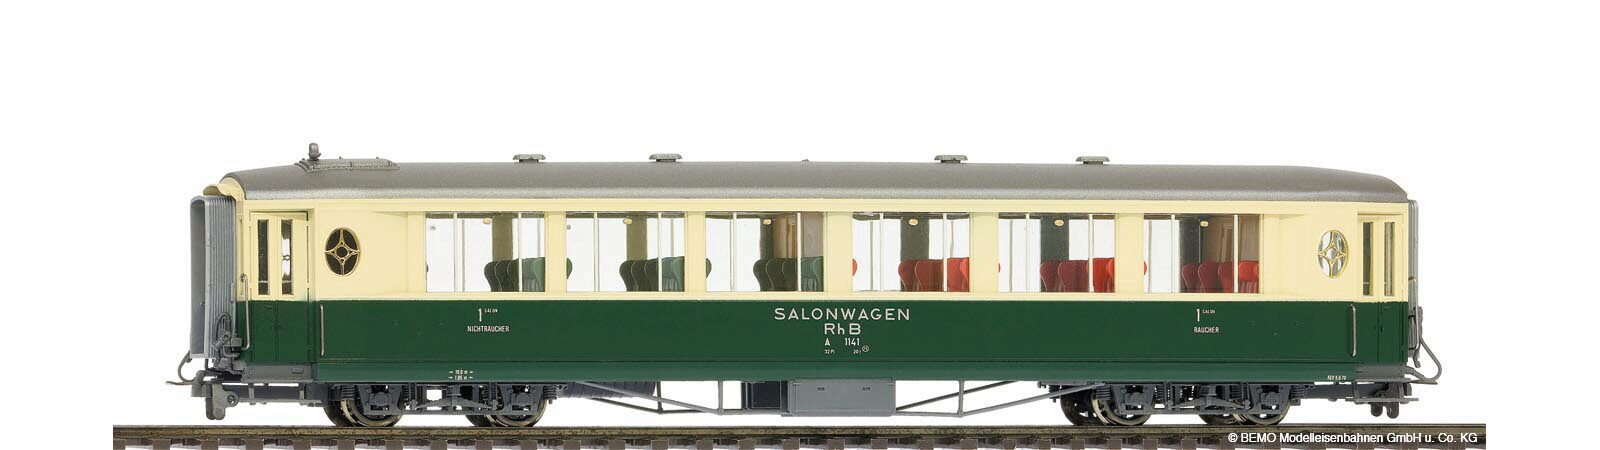 Bemo 3272102 RhB As 1142 Salonwagen